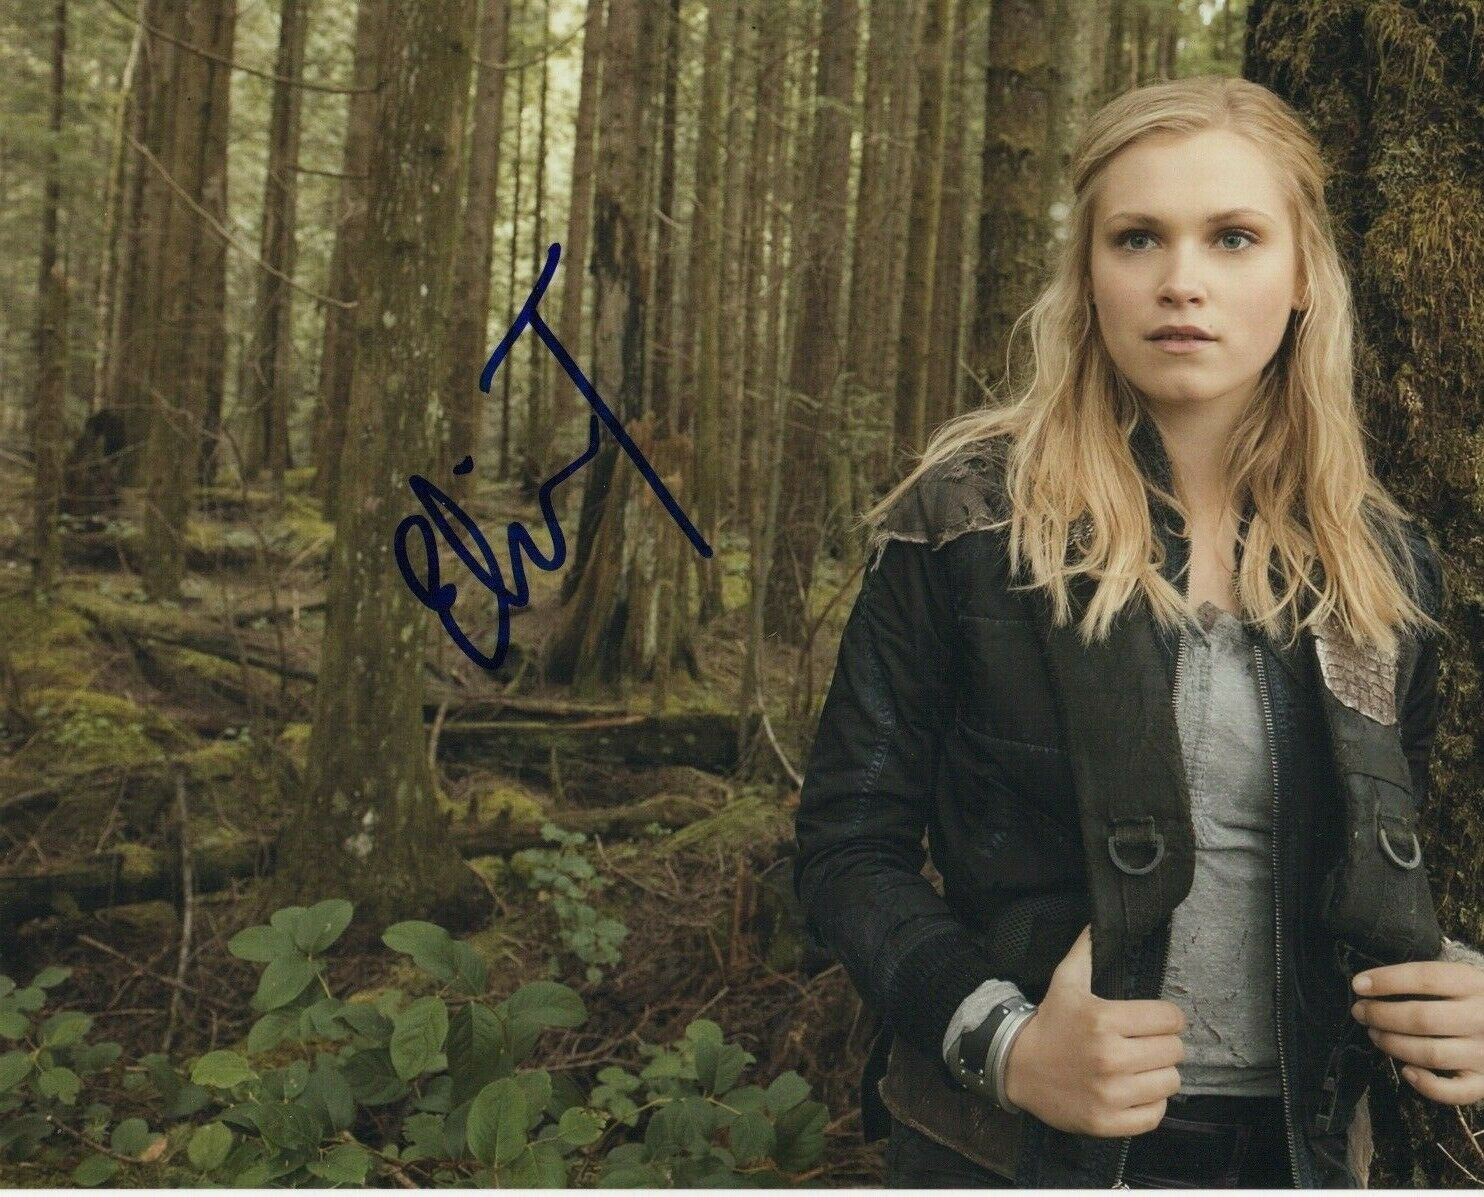 Eliza Taylor The 100 Signed Autograph 8x10 Photo #6 - Outlaw Hobbies Authentic Autographs